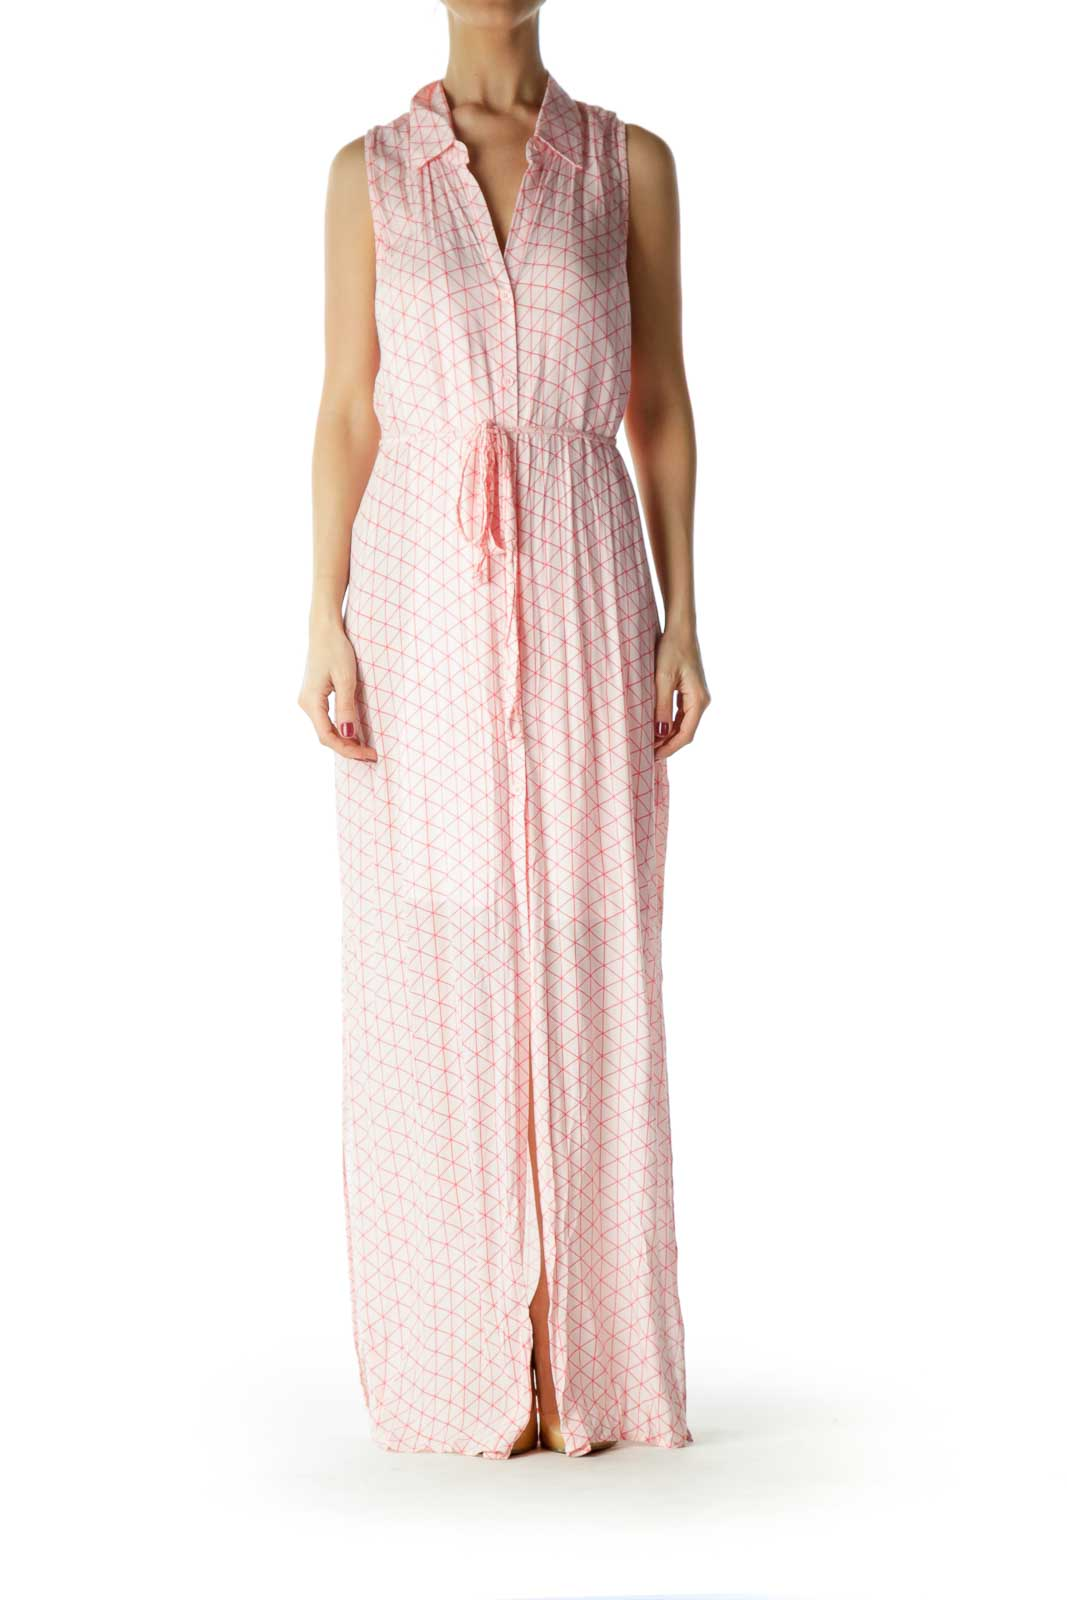 Pink Geometric Print Buttoned Day Dress Front